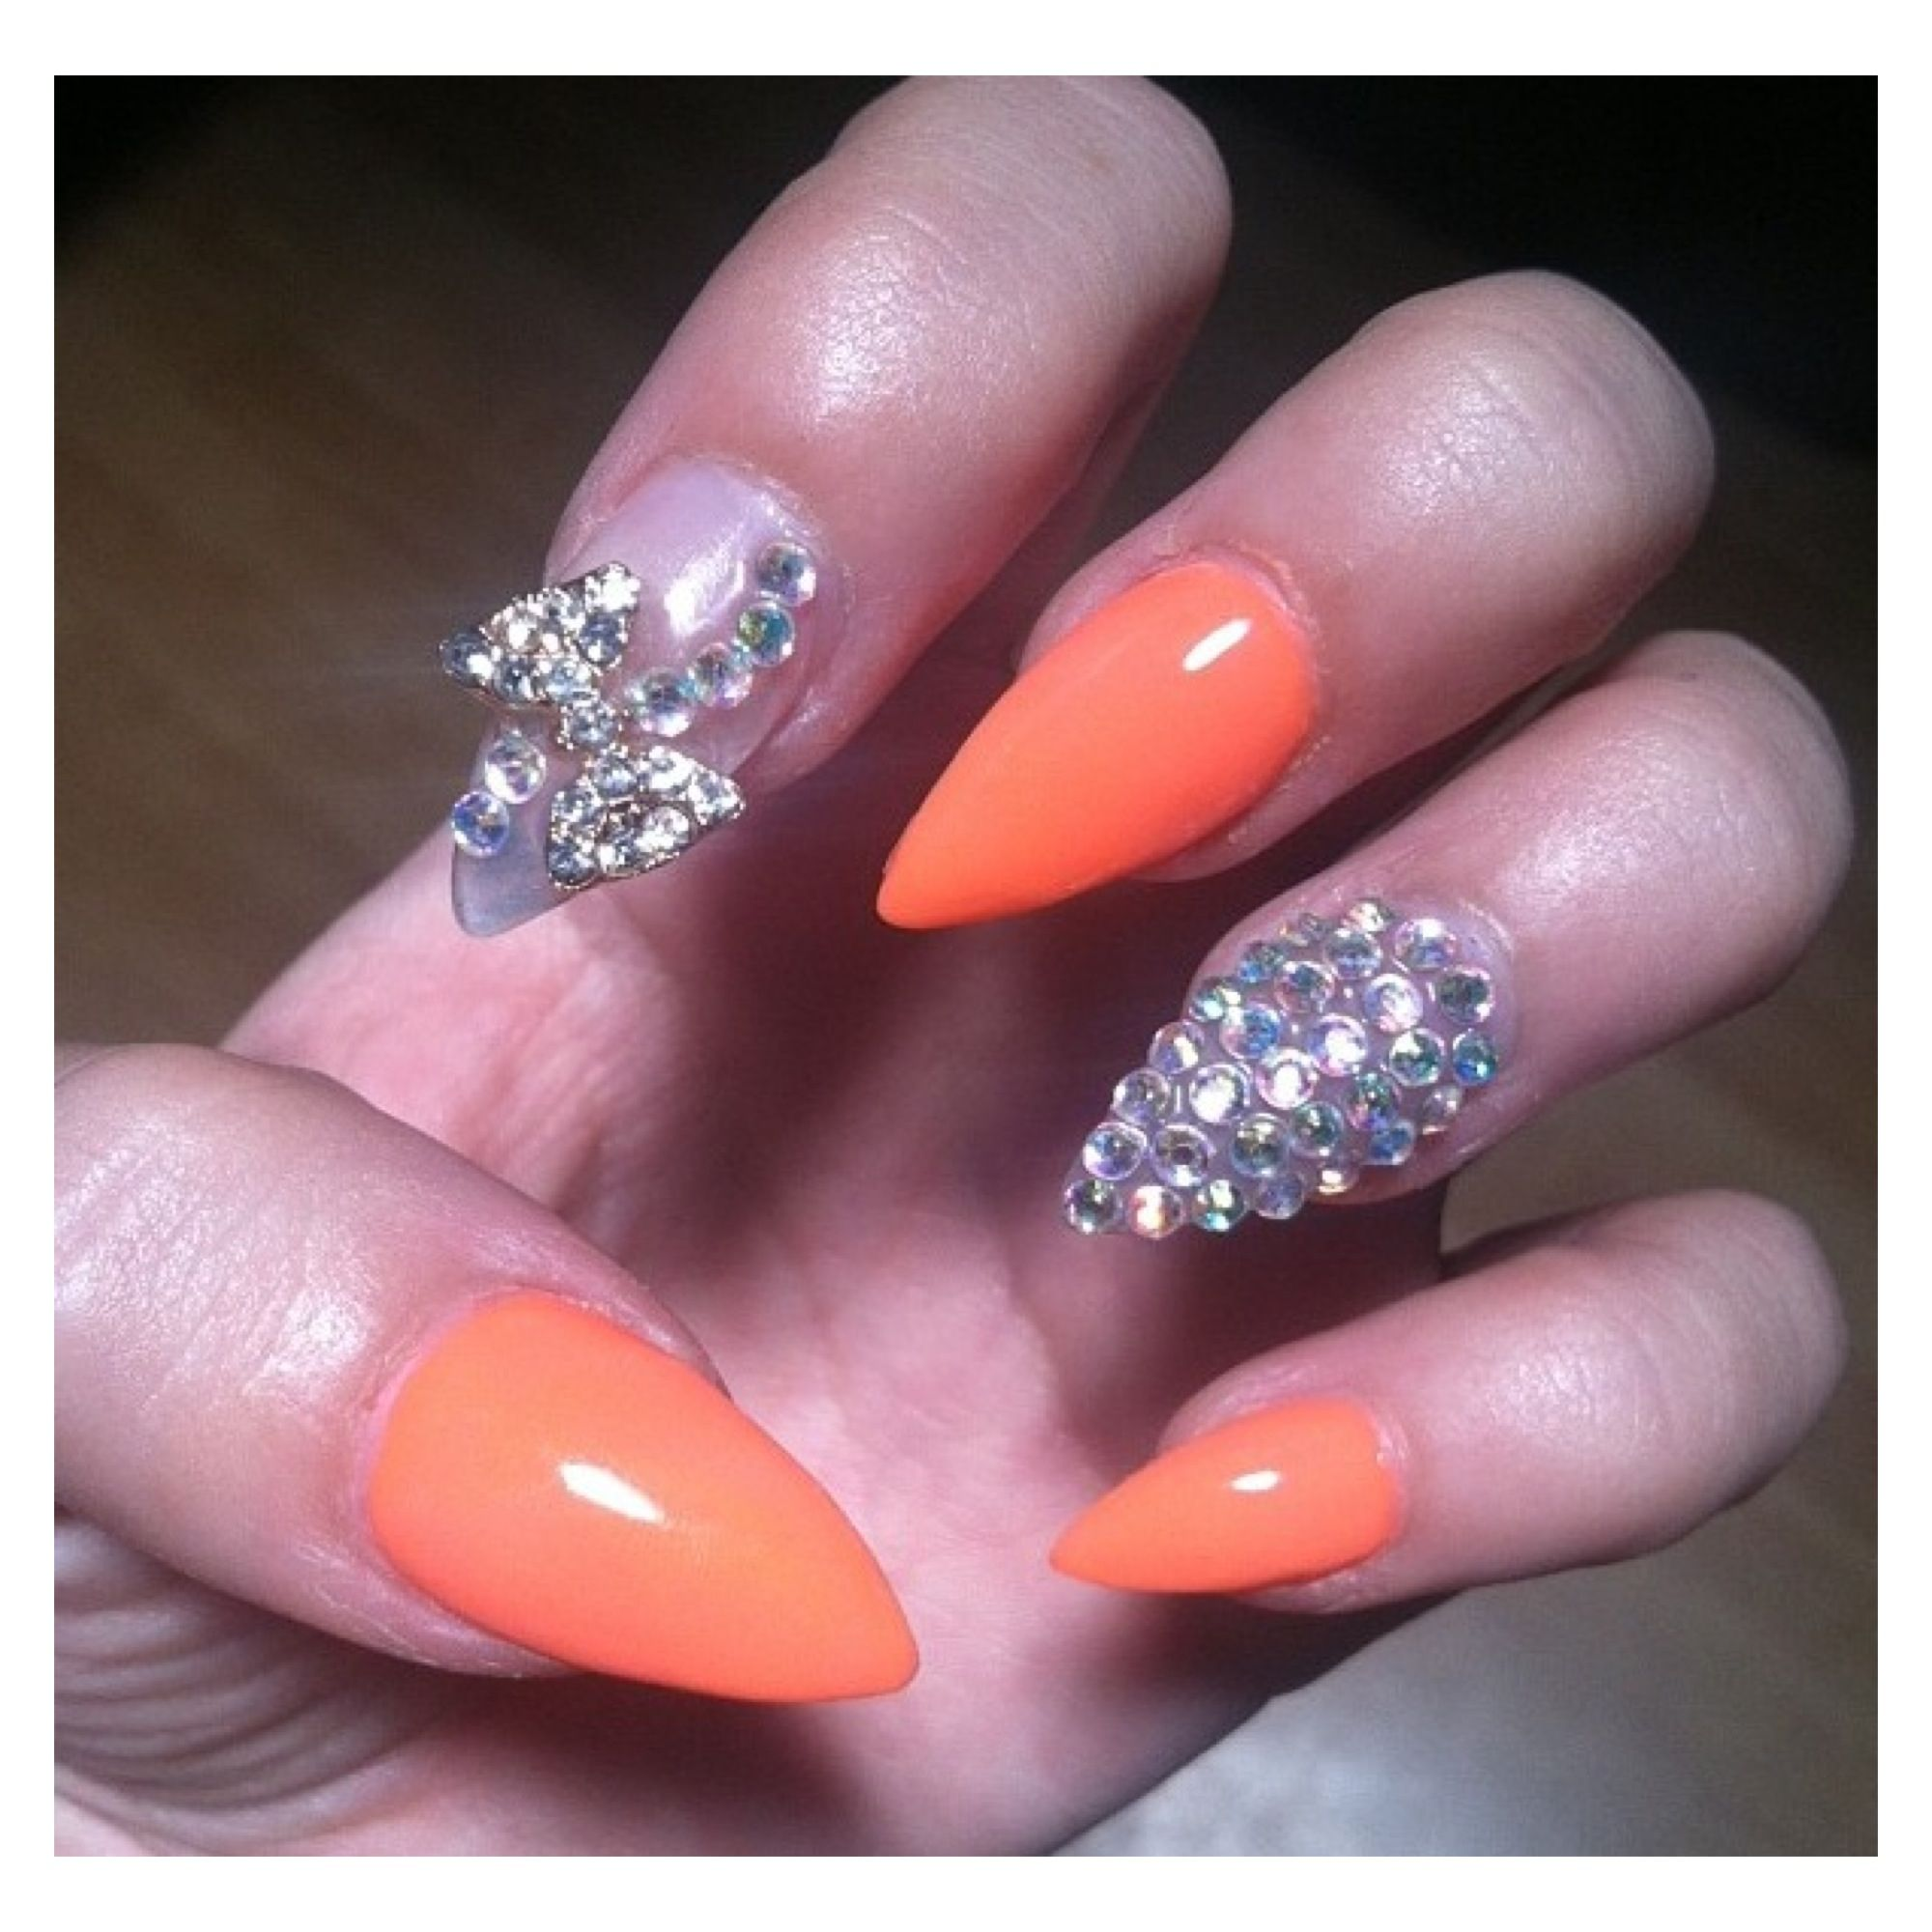 Claw Nails Prt. 2 ! #clawnails #neon #orange #gems #claws #bow ...